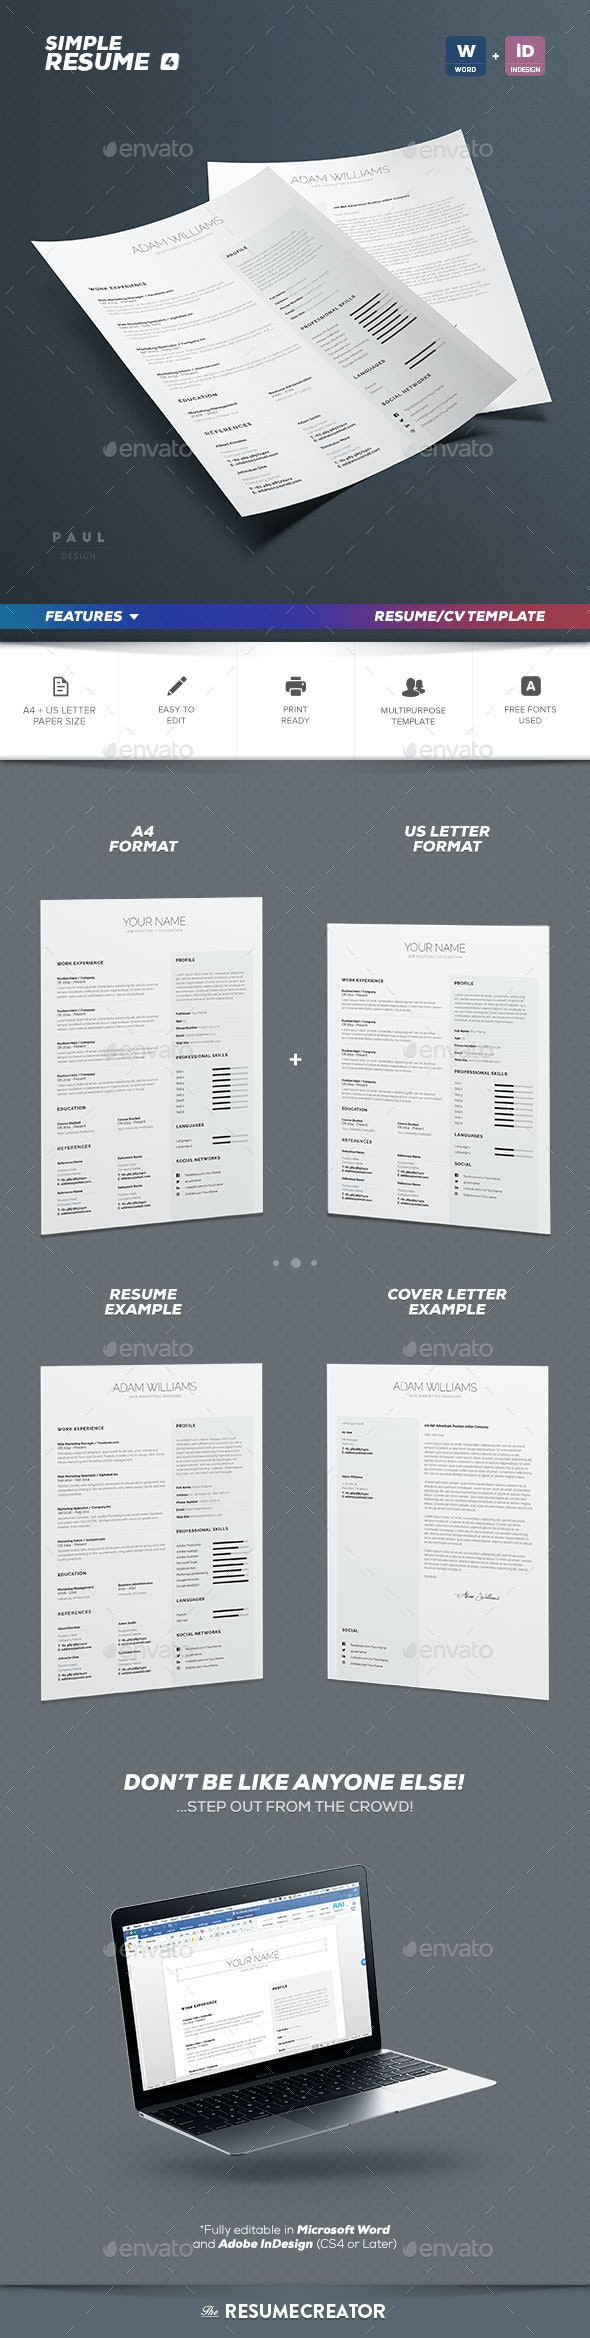 Simple Resume/Cv Volume 4 - Resumes Stationery